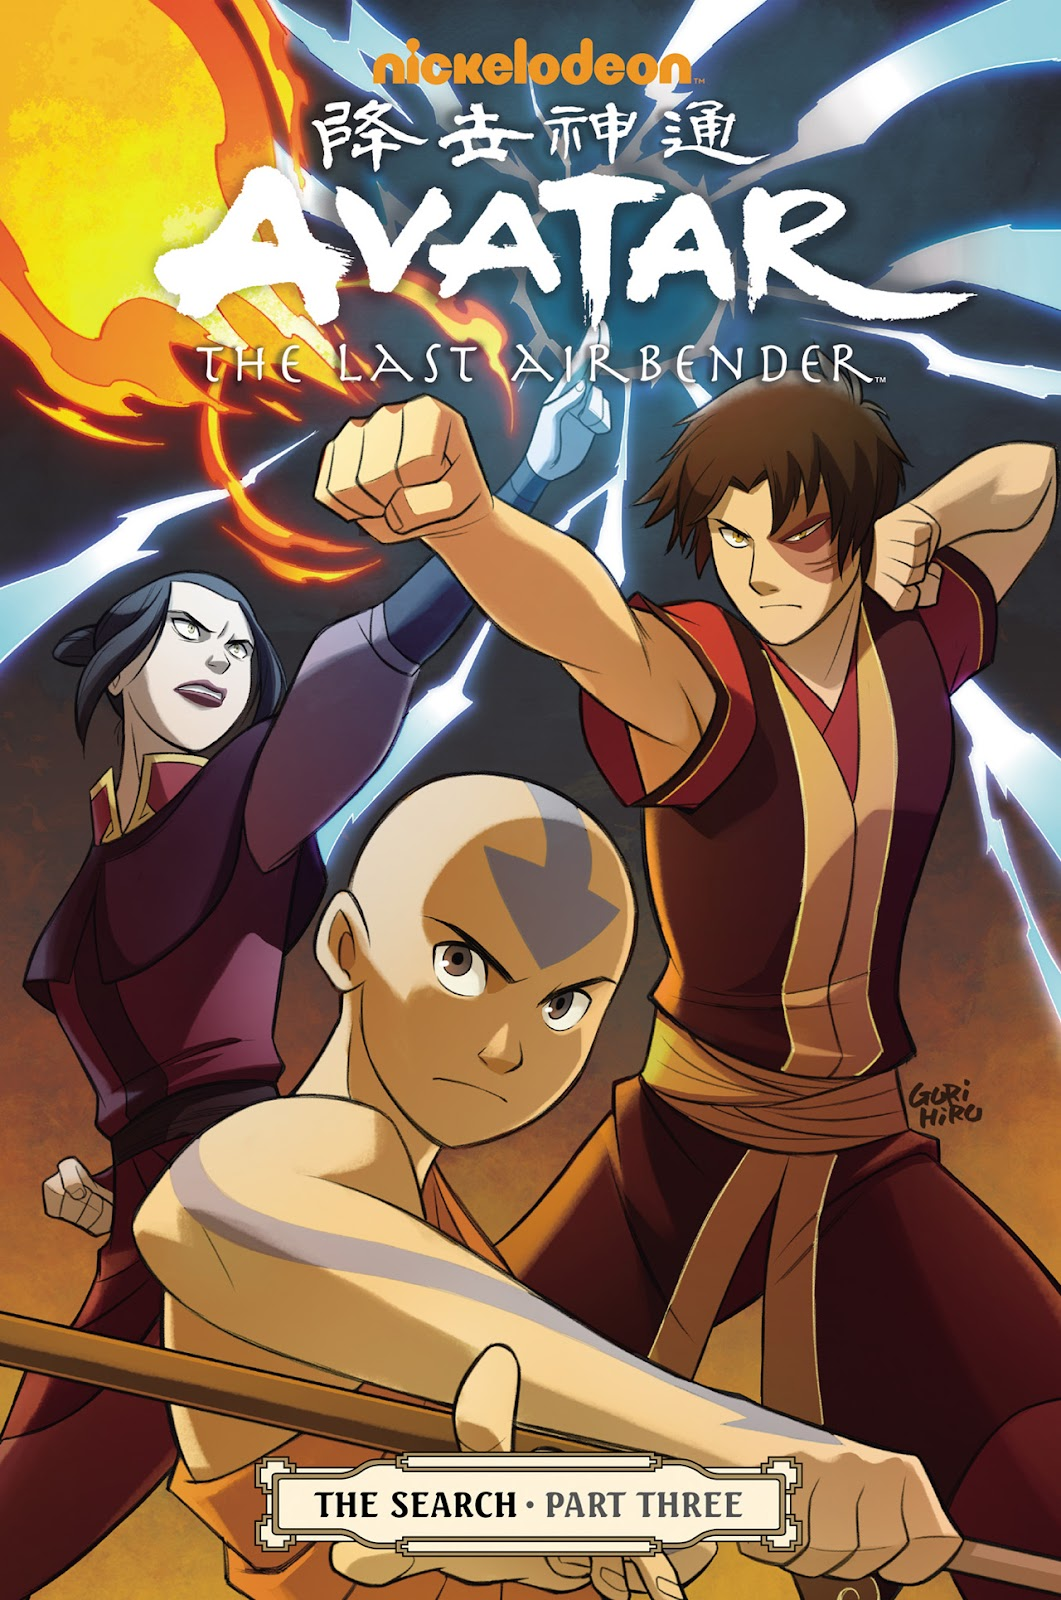 Nickelodeon Avatar: The Last Airbender - The Search issue 3 - Page 1